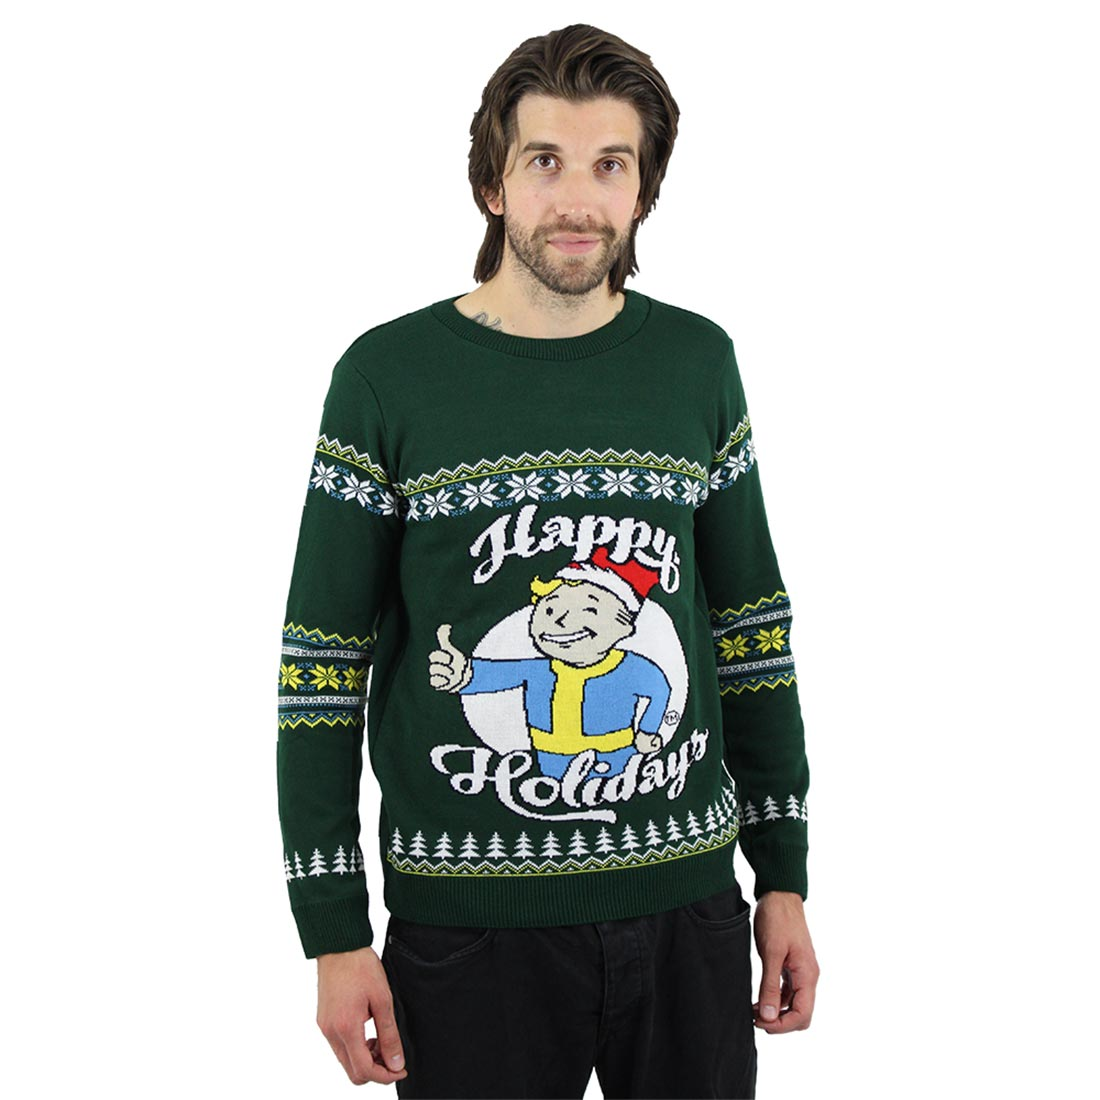 Official Fallout Happy Holidays Christmas Jumper / Ugly Sweater